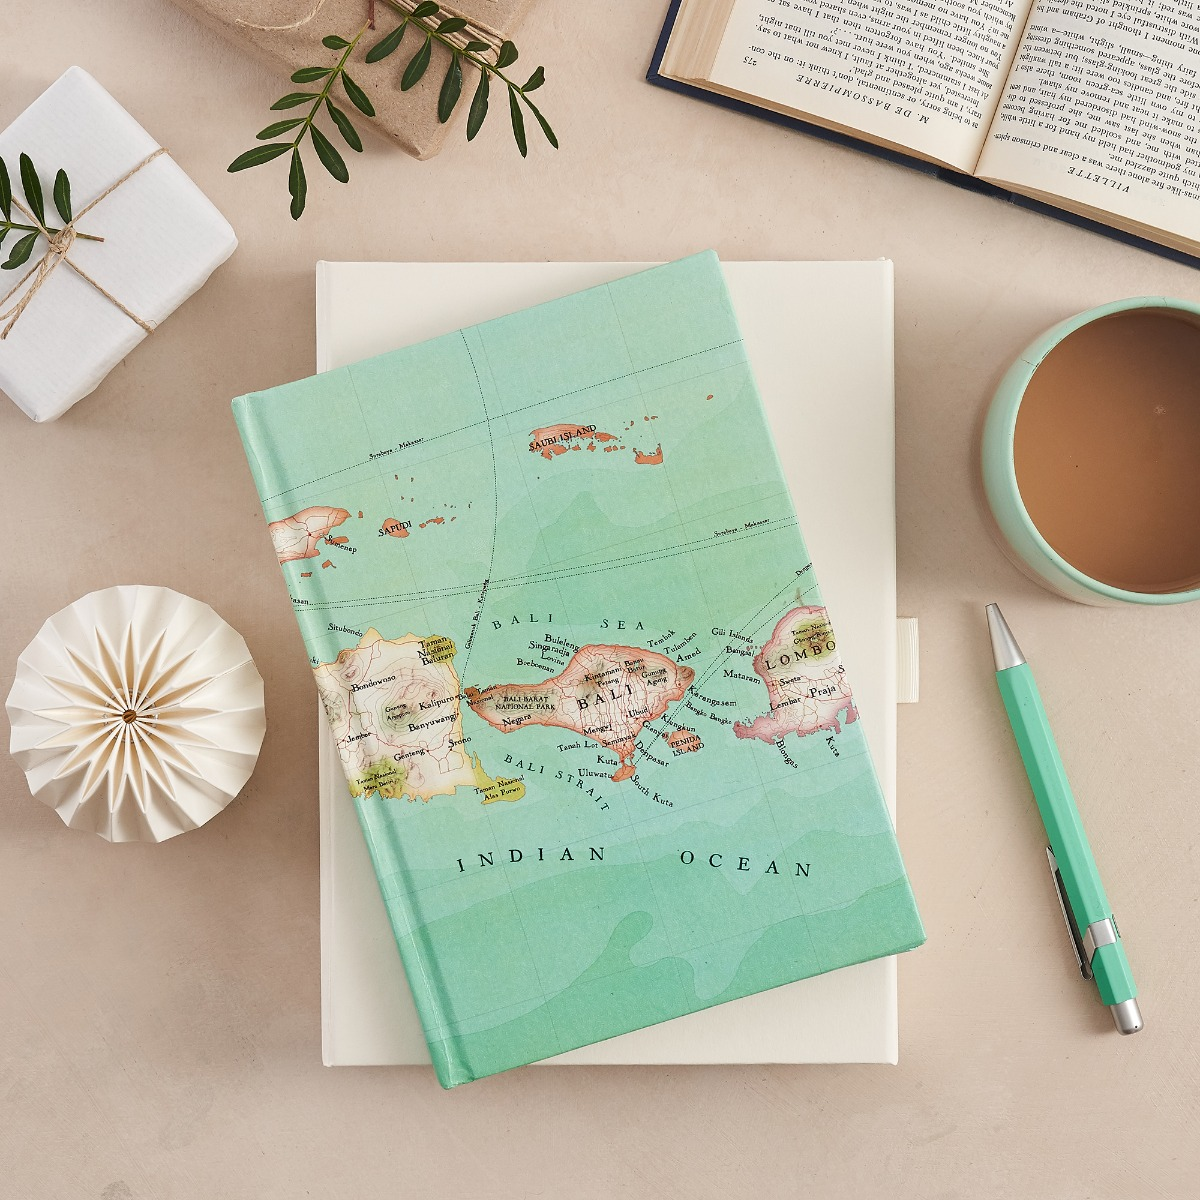 Map notebook of Bali